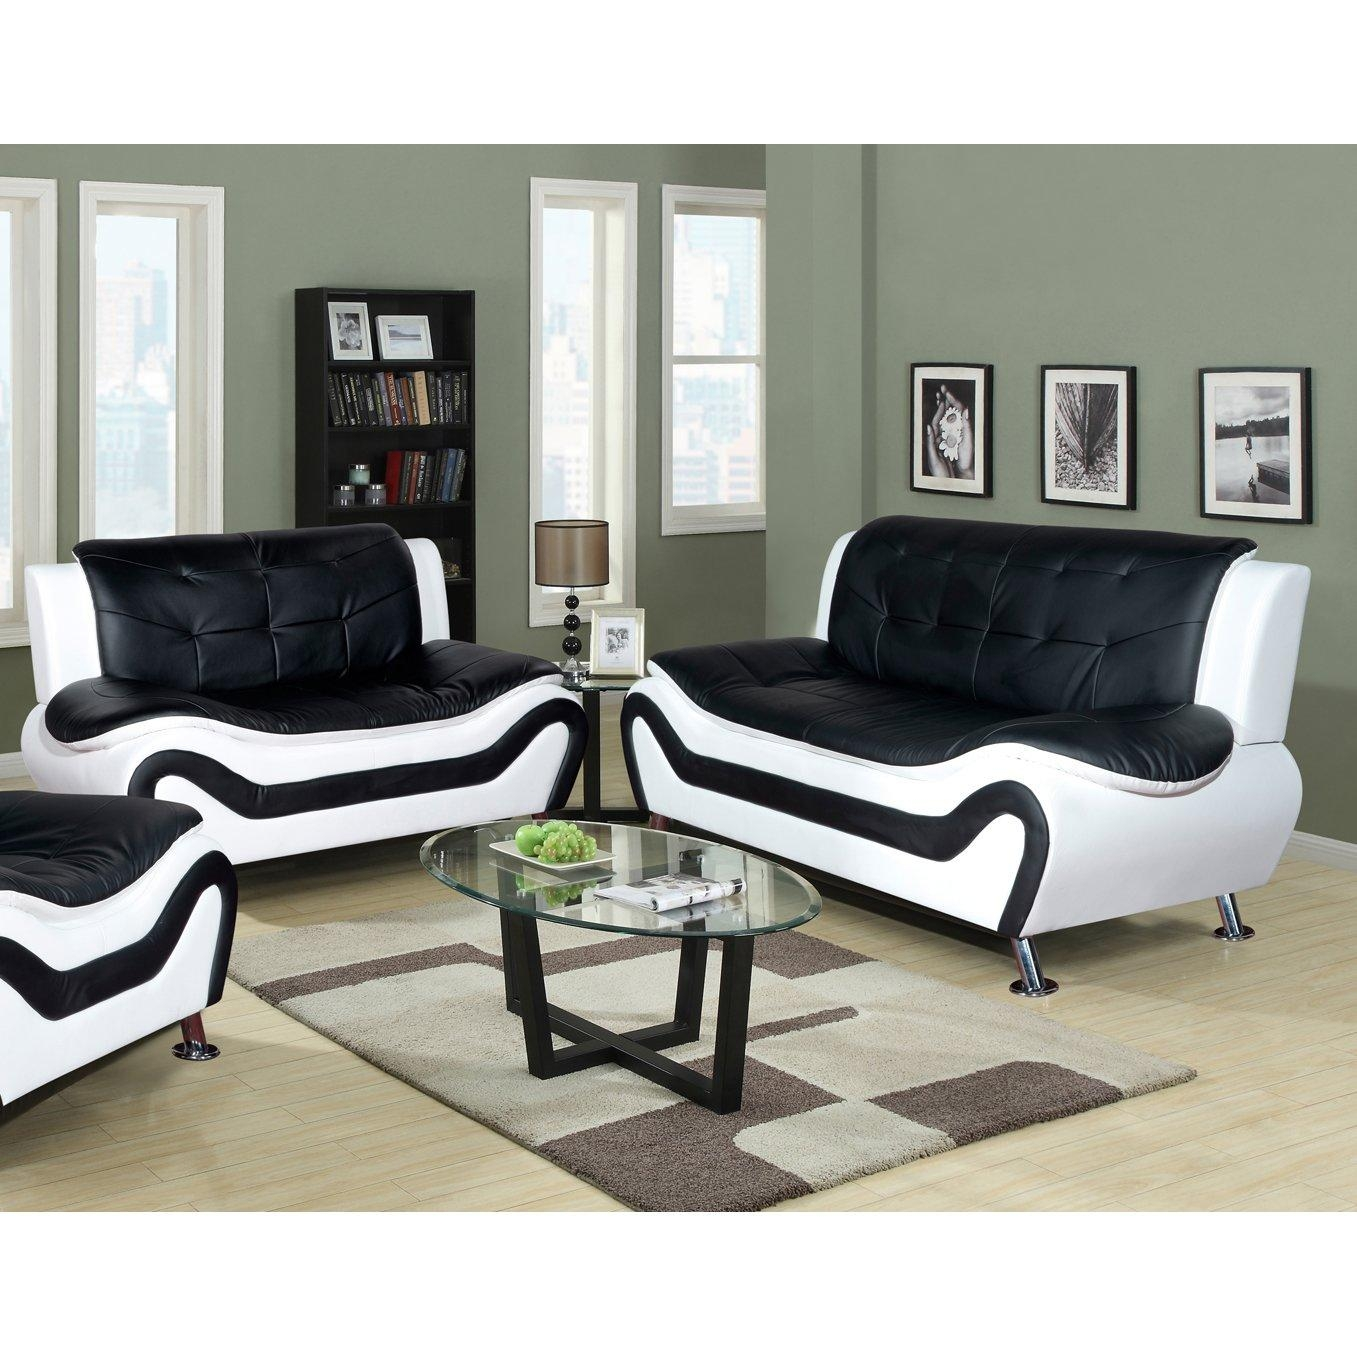 Living Room: Excellent Sofa And Loveseat Sets Discount Sofa And Throughout Black And White Sofas And Loveseats (Image 7 of 20)